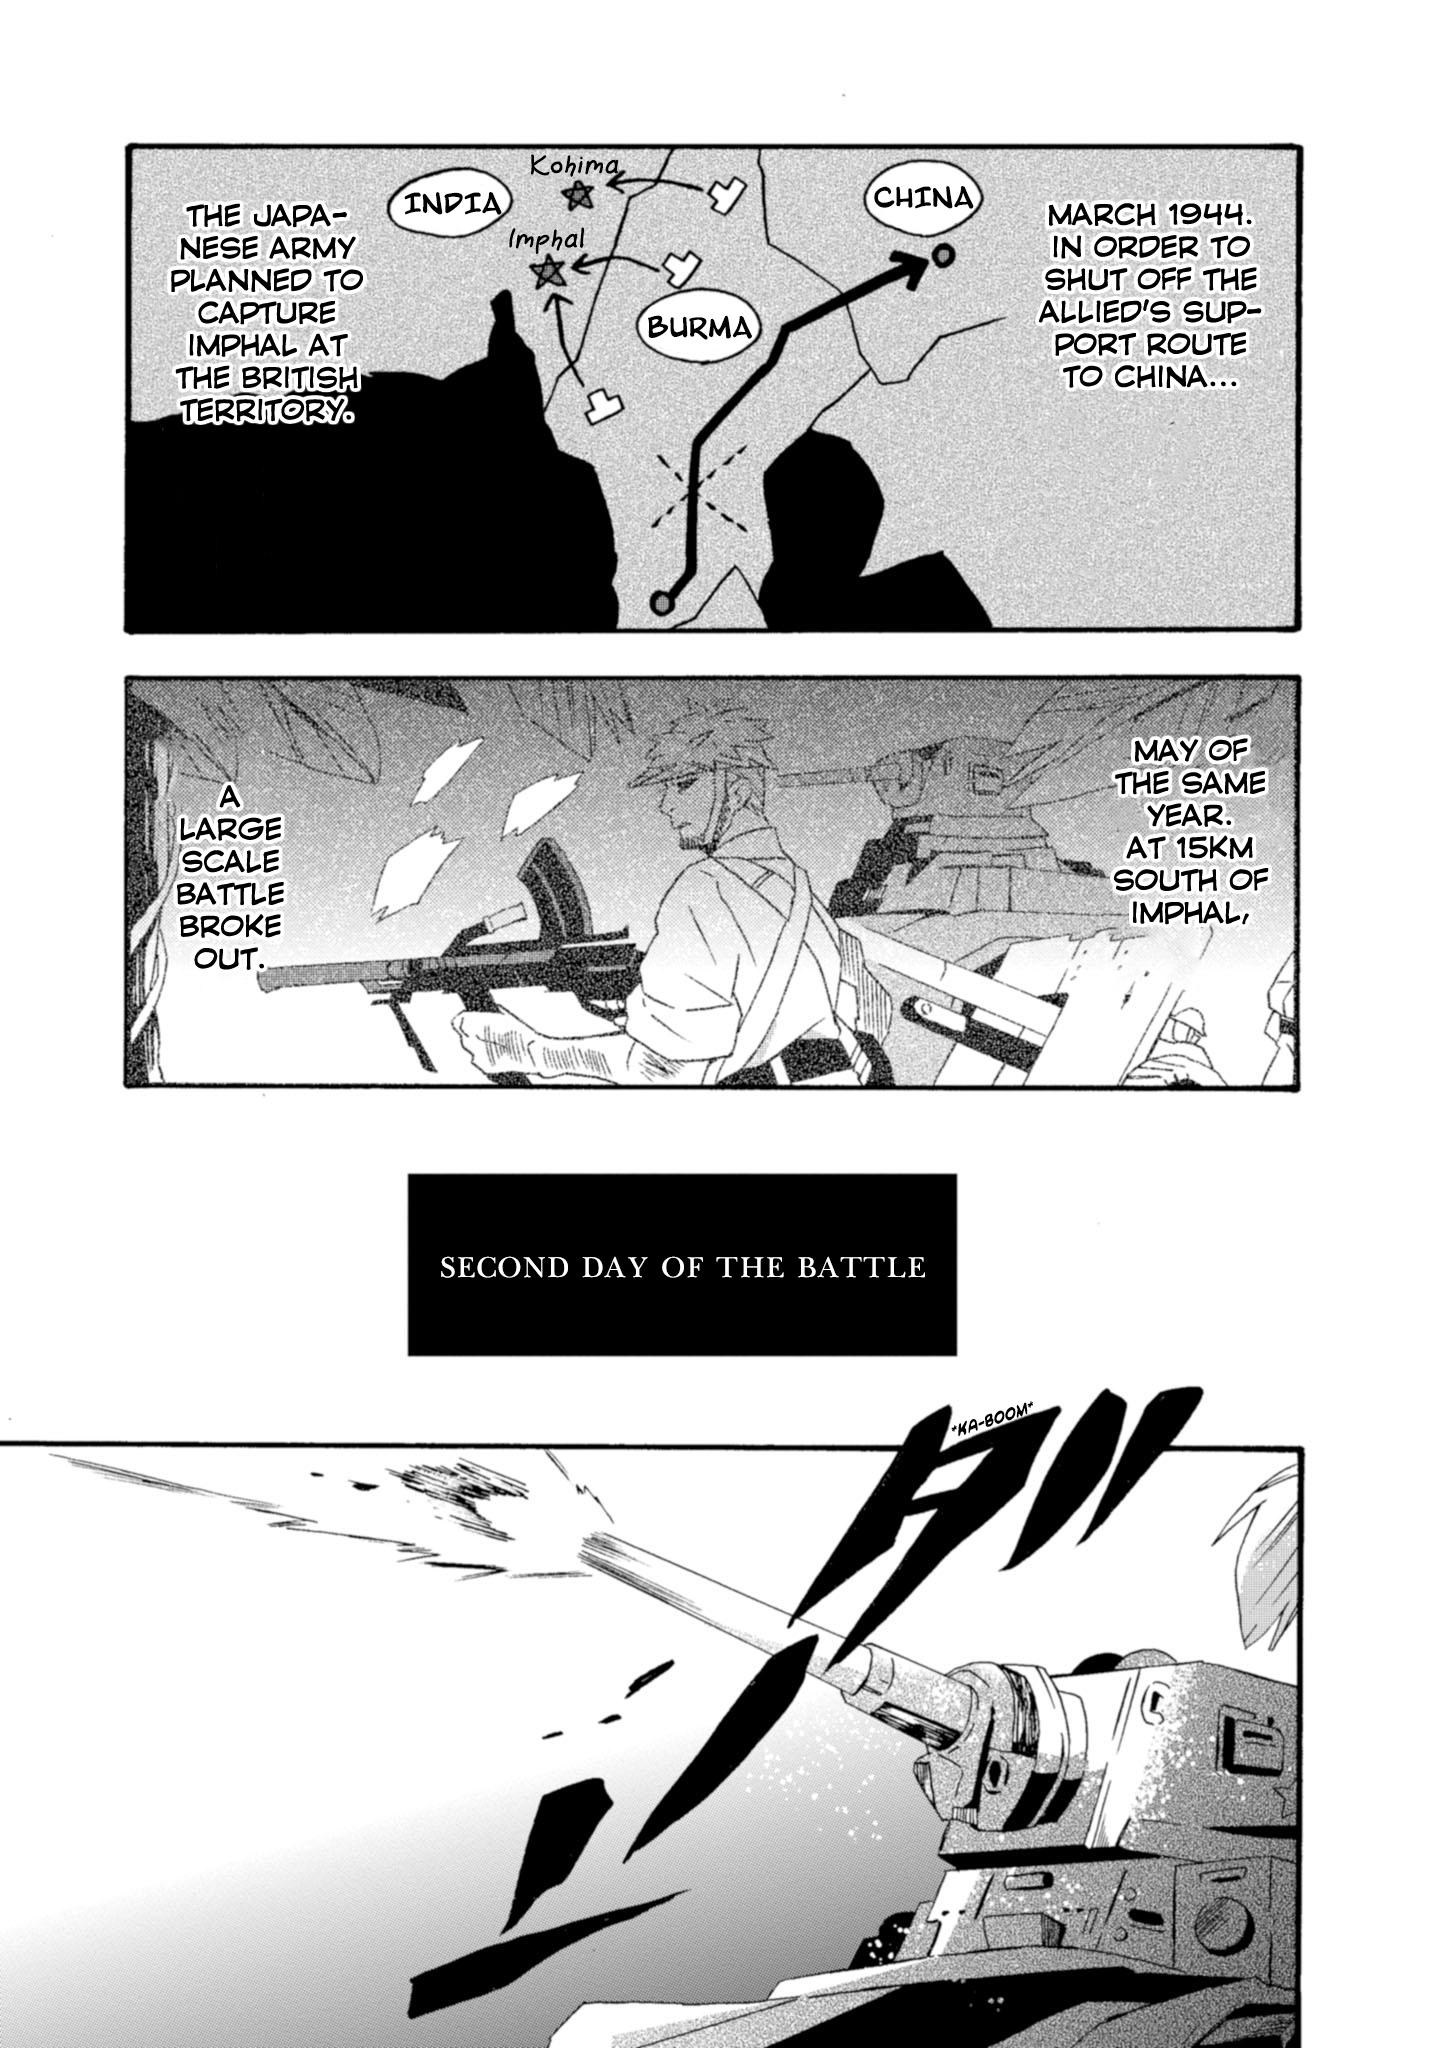 Will You Marry Me Again If You Are Reborn? Vol.4 Chapter 18: This Is War page 6 - Mangakakalots.com